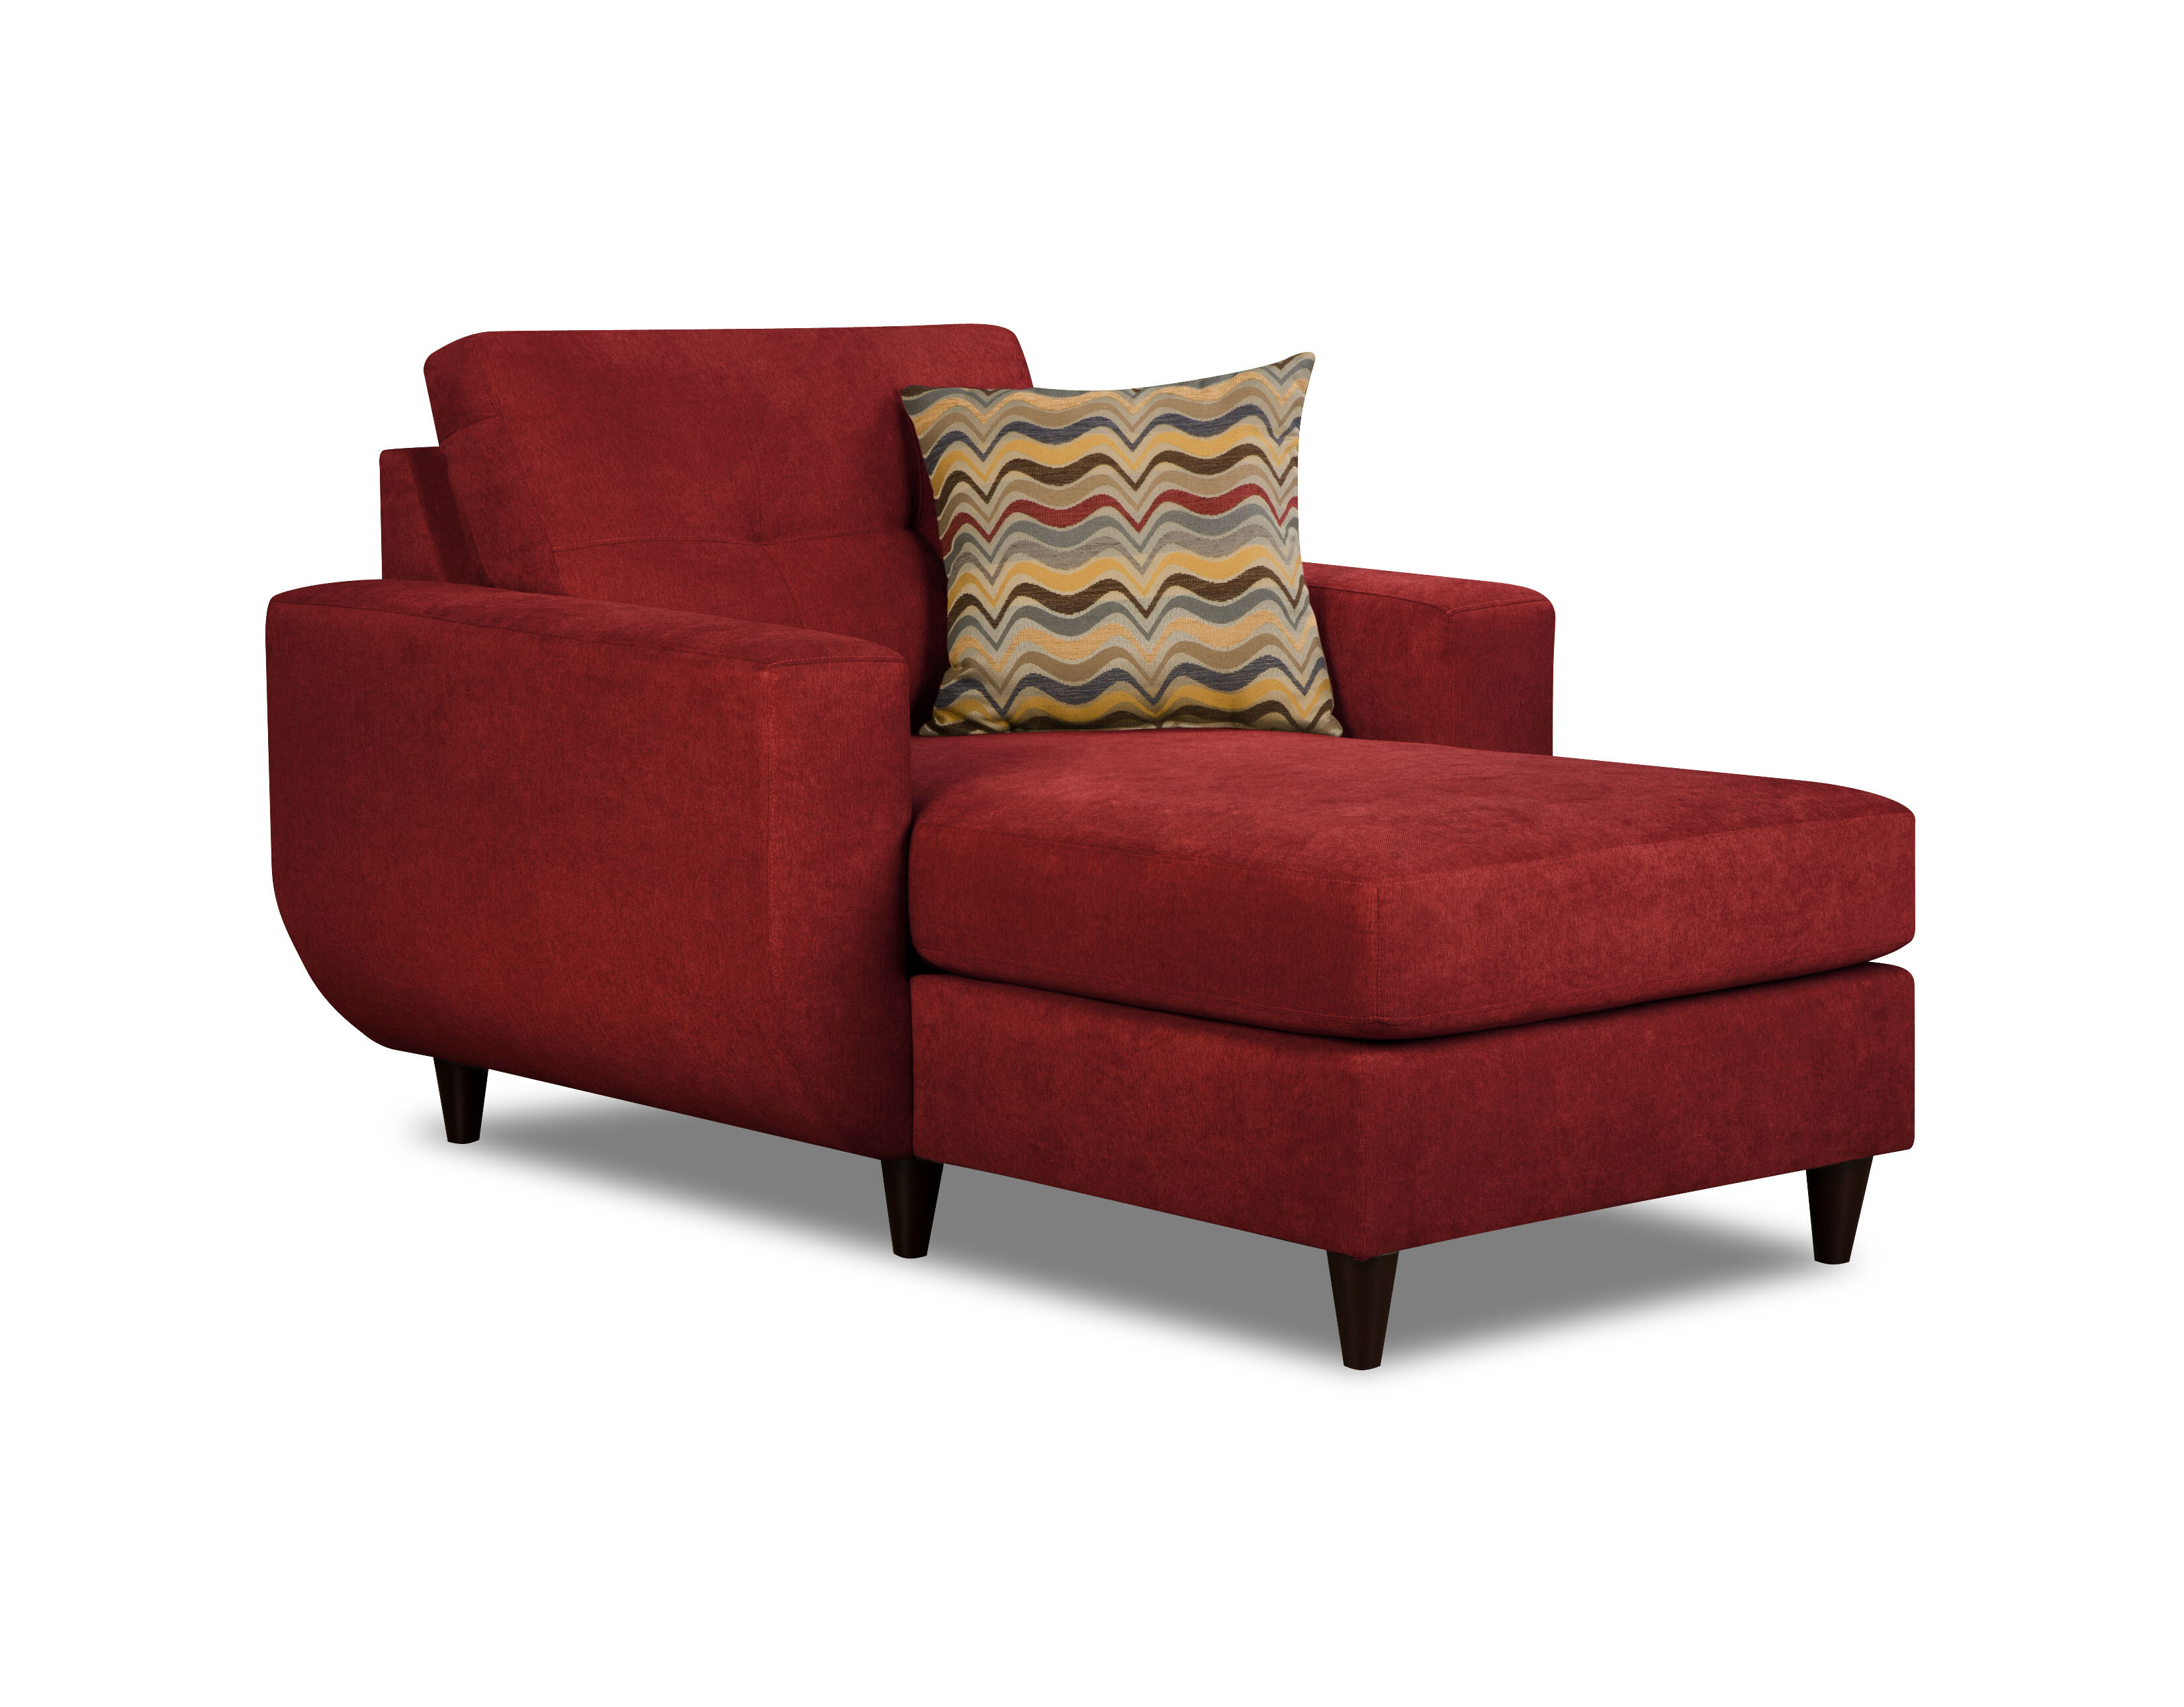 cushion garden overstock free home wicker red jeco shipping product lounge today chaise patio